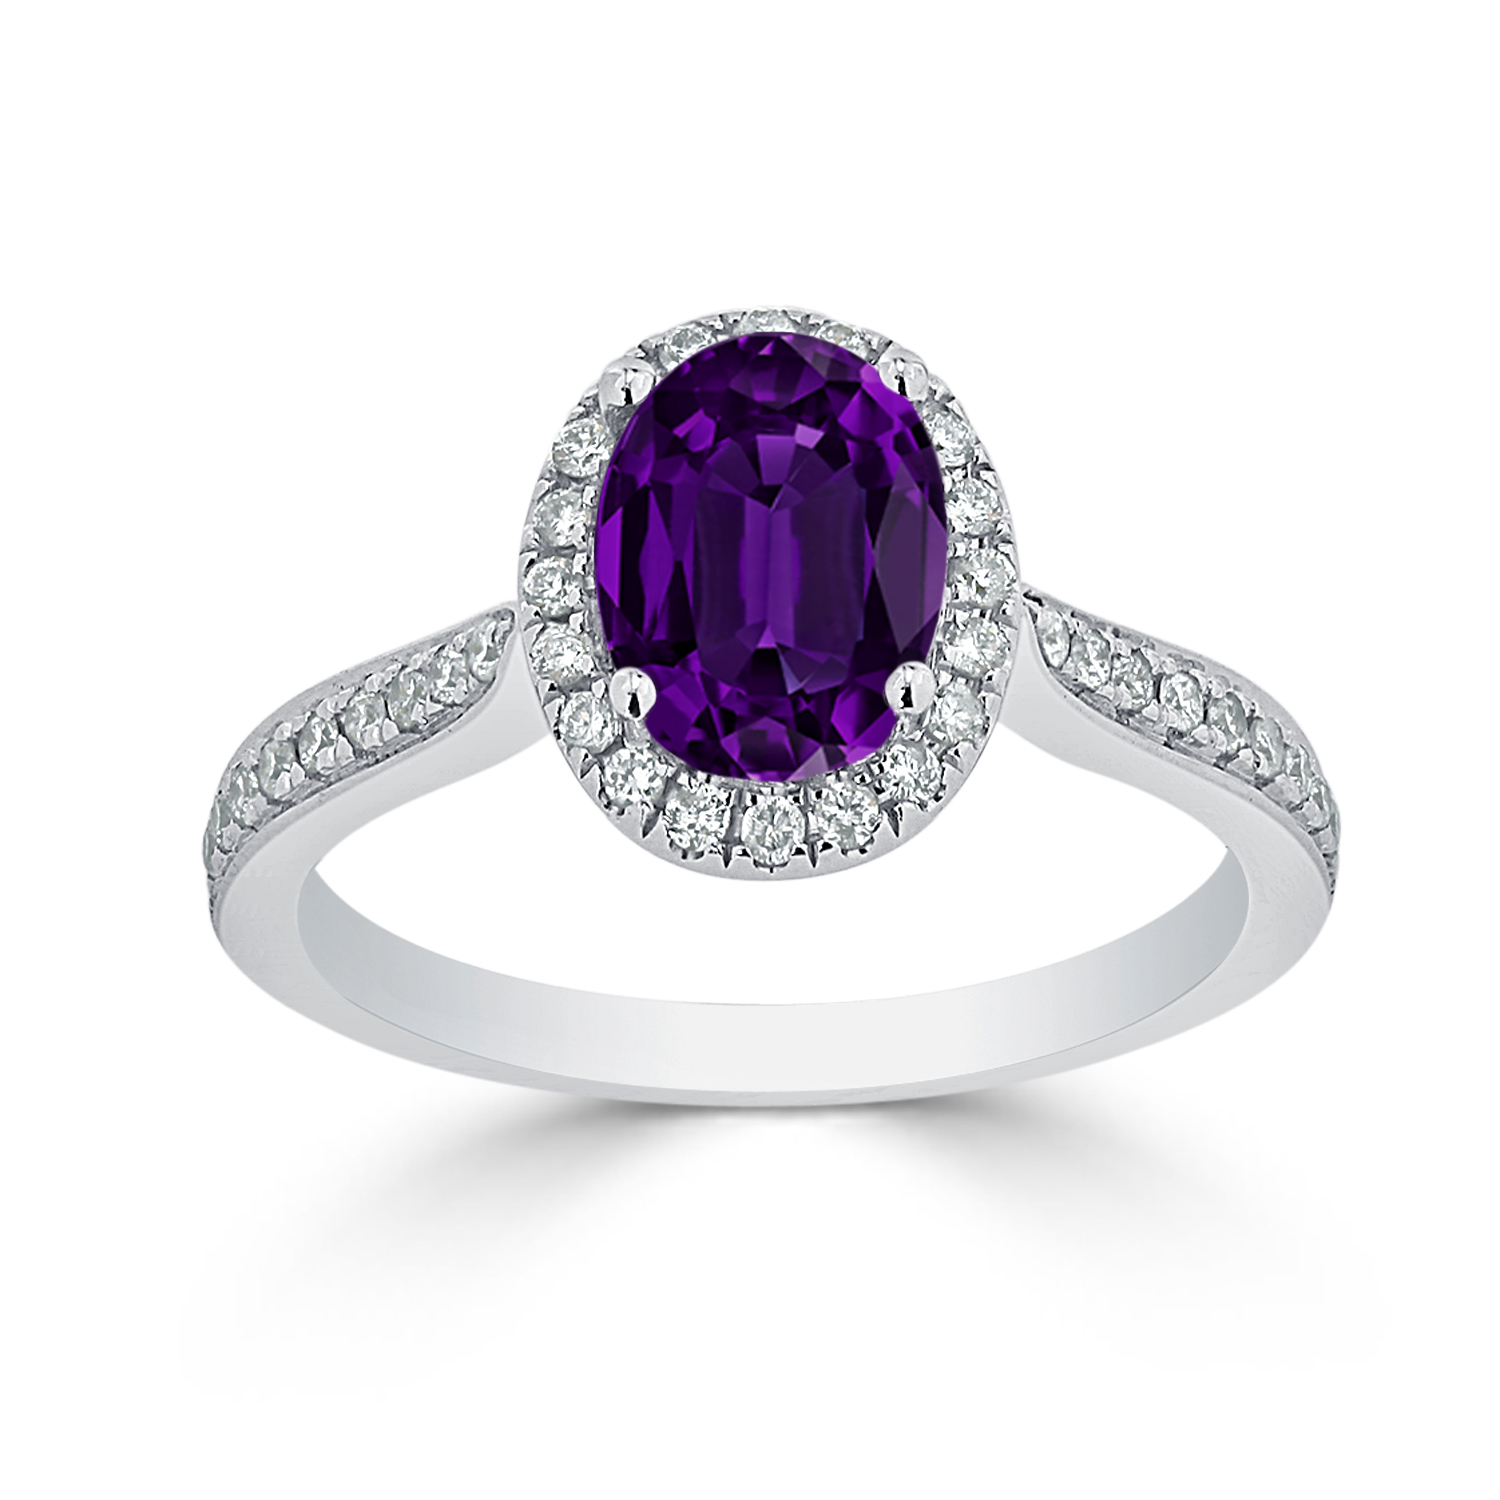 Halo Purple Amethyst Diamond Ring in 14K White Gold with 1.30 carat Oval Purple Amethyst